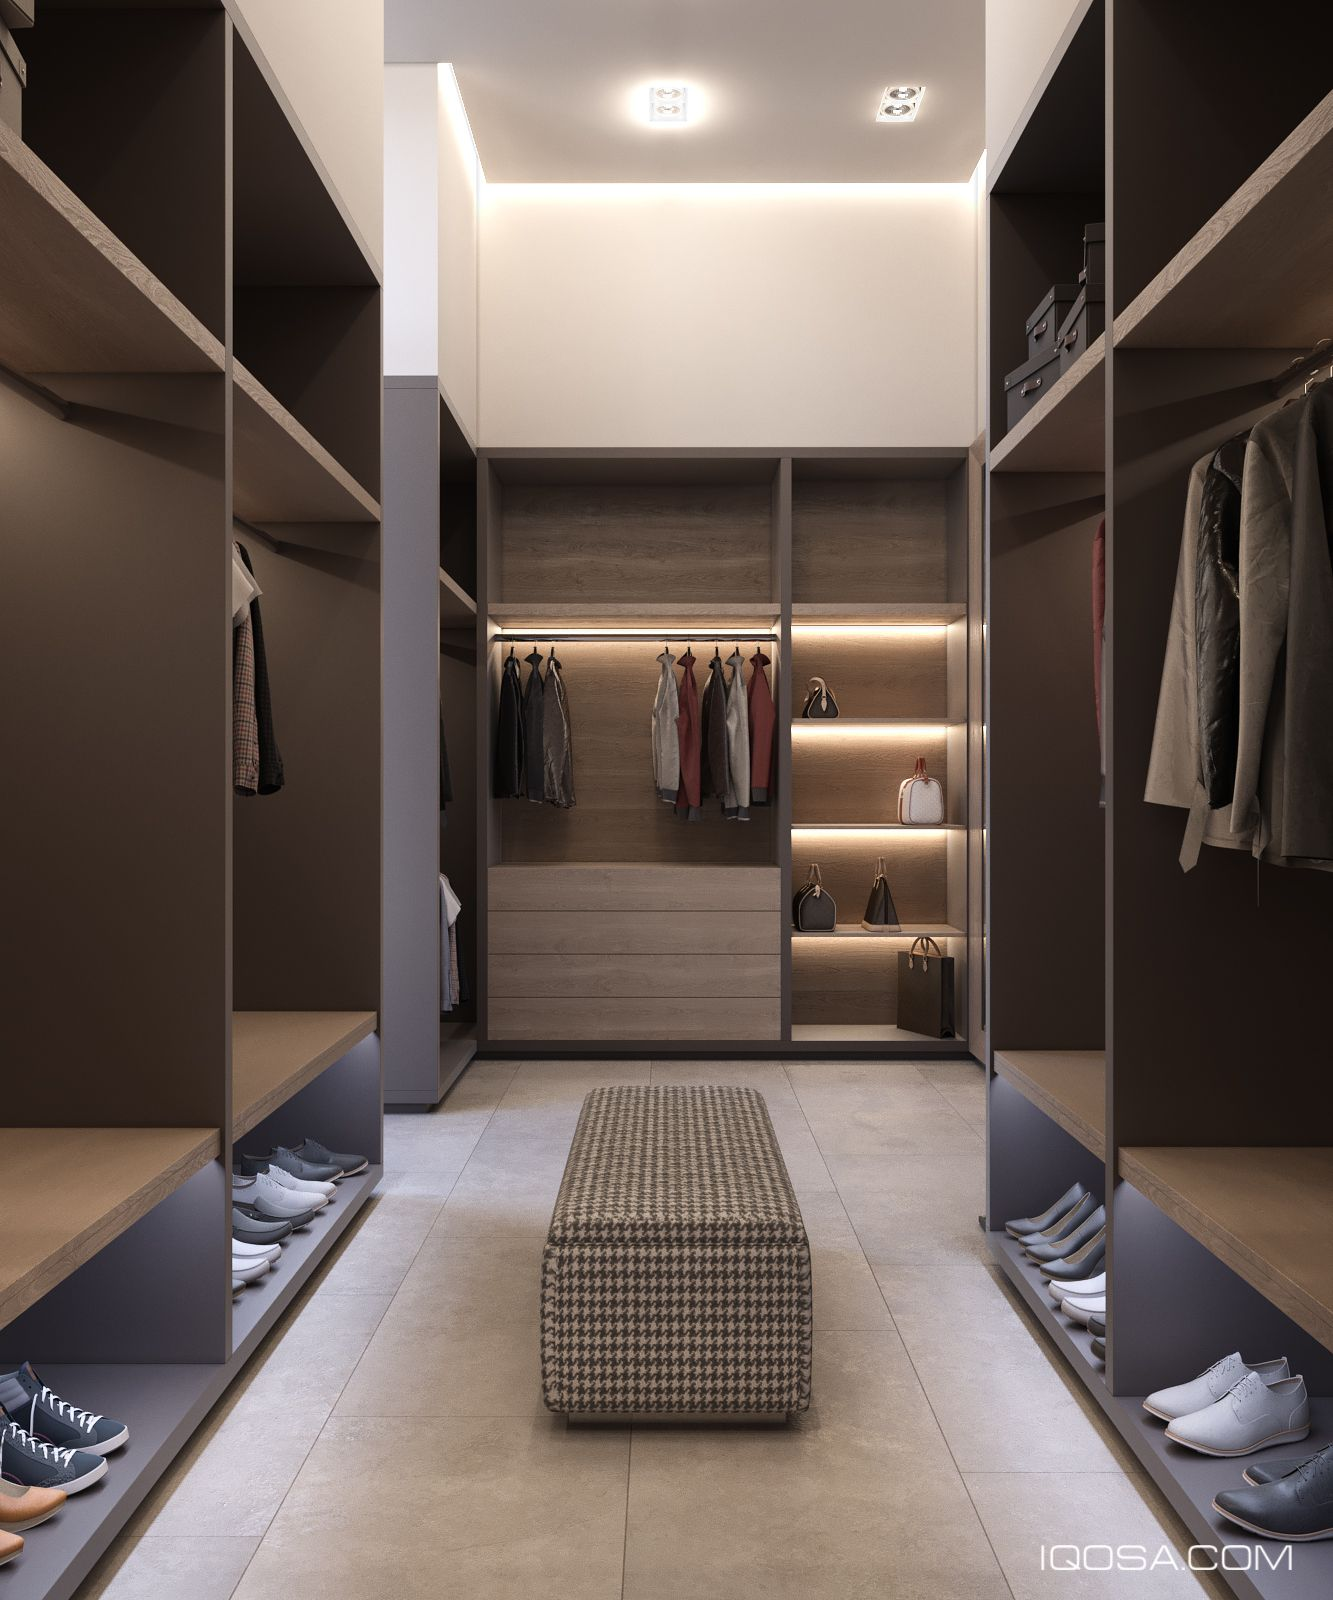 Open no doors to the wardrobe Like area for shoes in the bottom